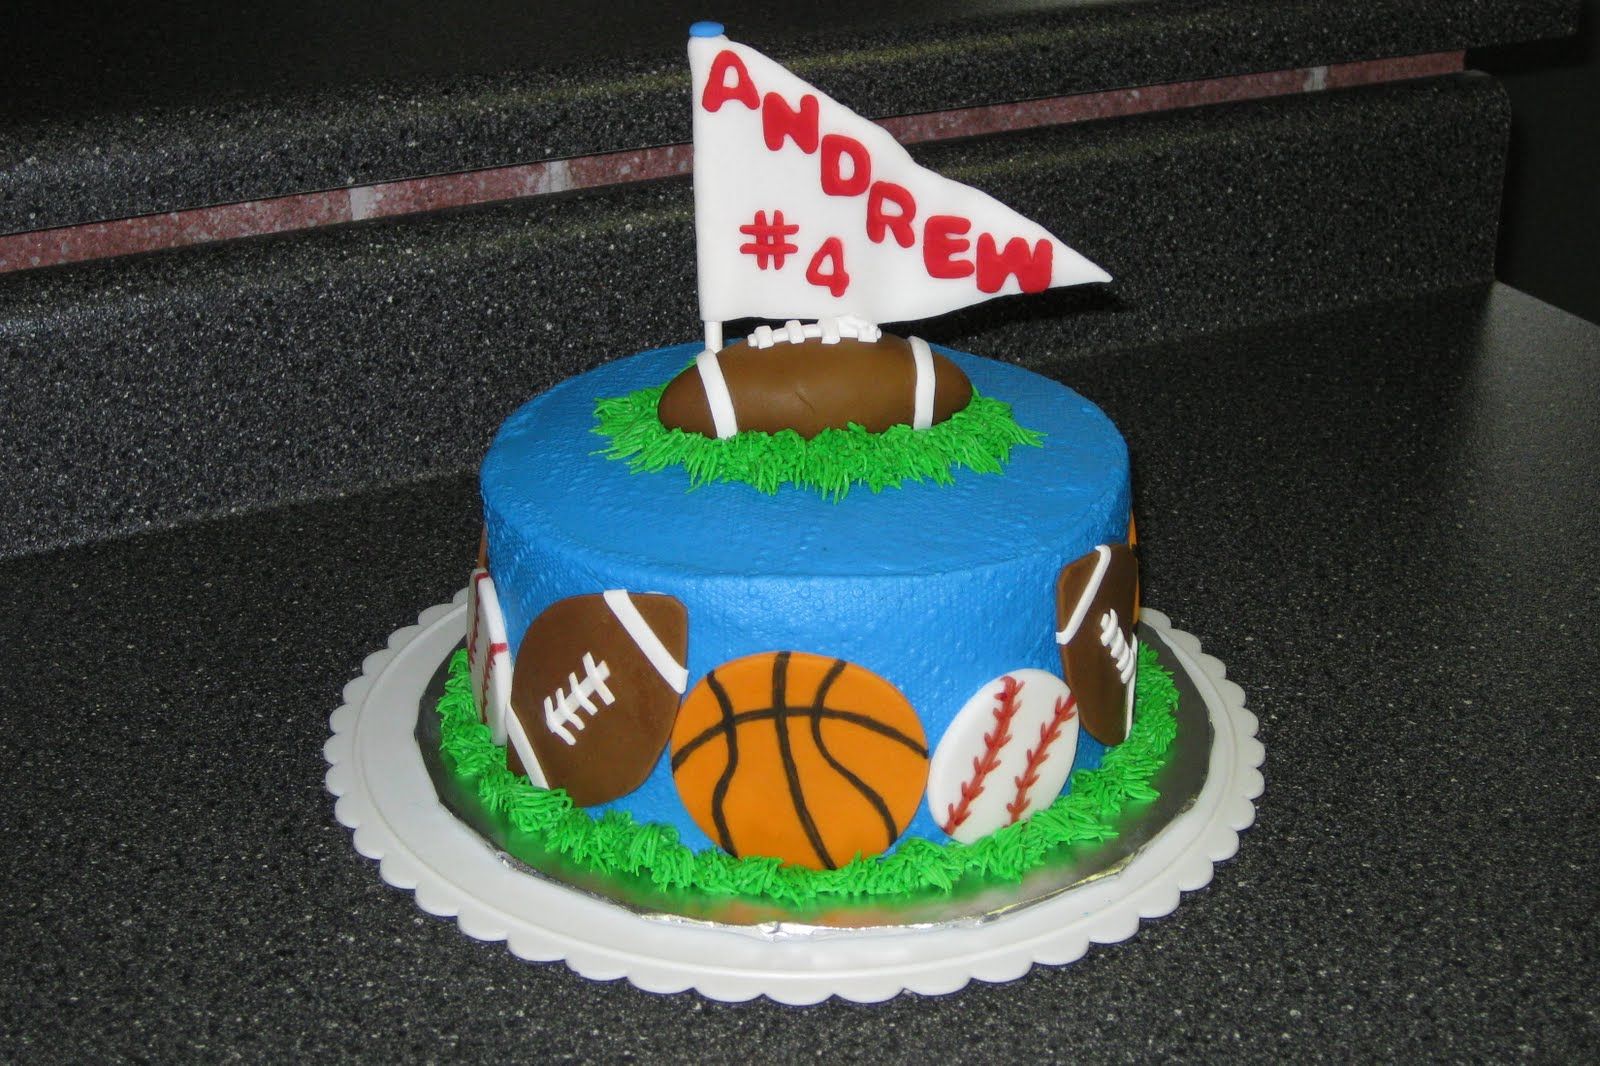 Cake Decorations For Sports : SWEET Memories: Sports Cake